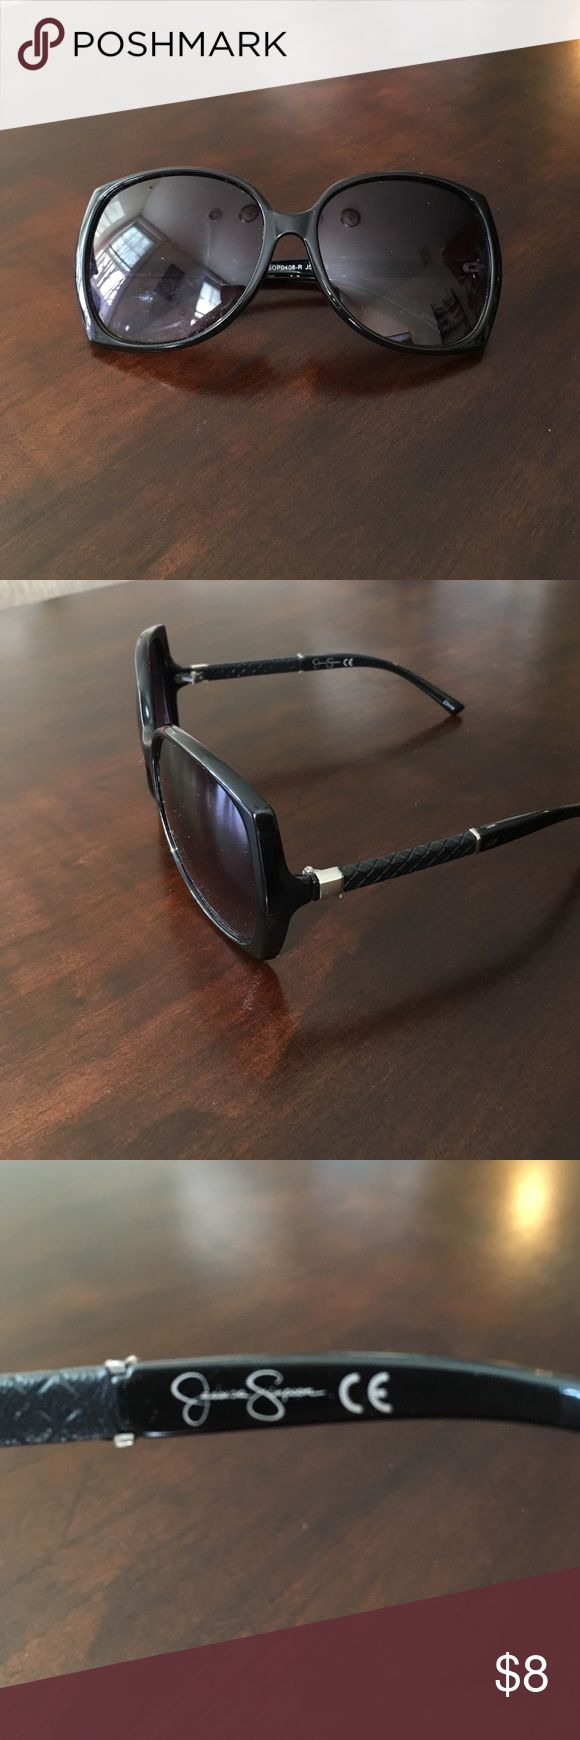 Jessica Simpson Sunglasses Black sunglasses with gold accents from Jessica Simpson. Great condition! 💕 Jessica Simpson Accessories Glasses